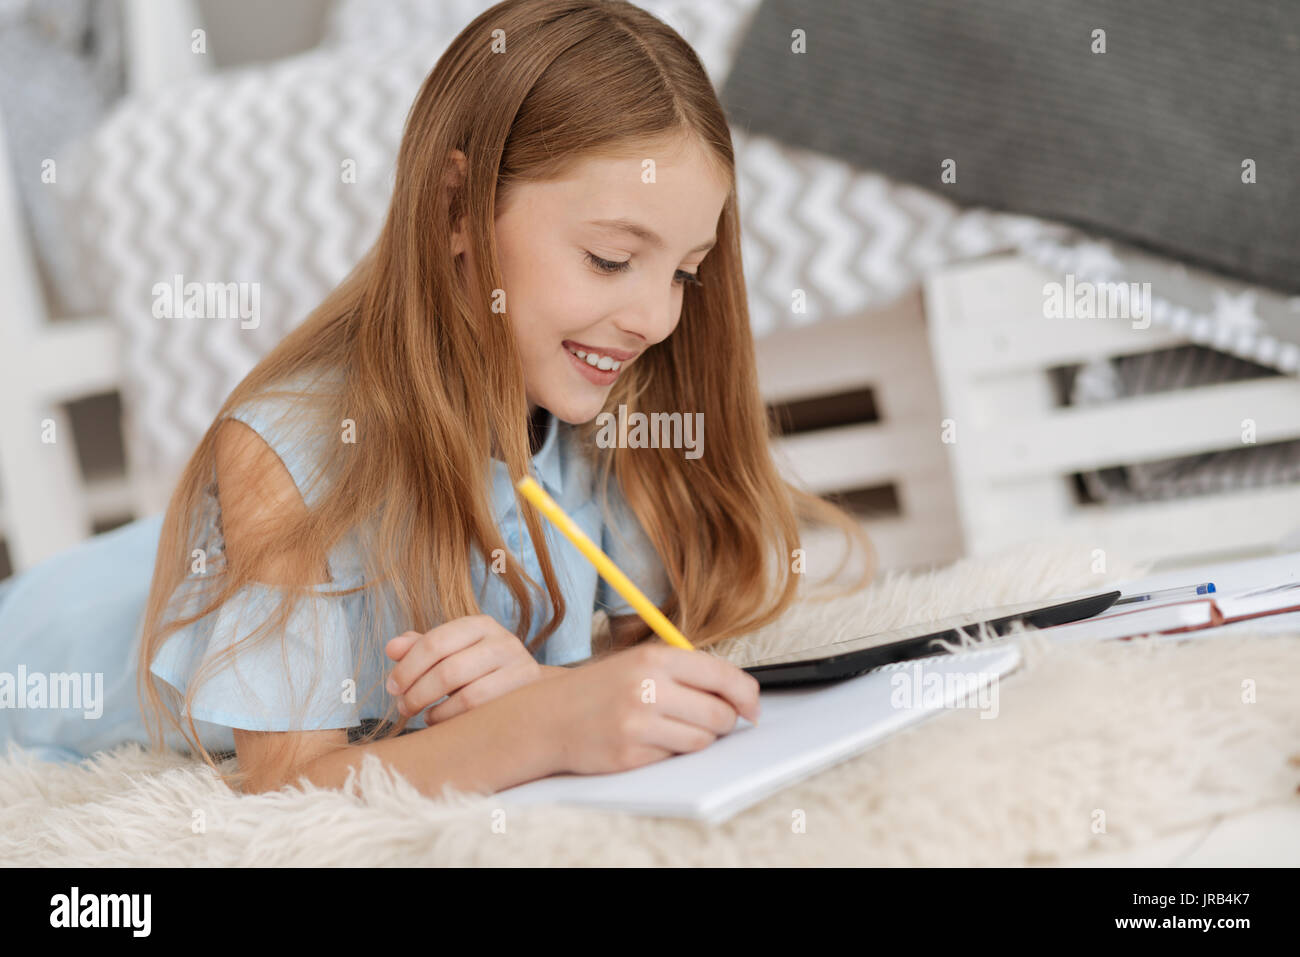 Adorable kid writing in notebook while studying at home - Stock Image